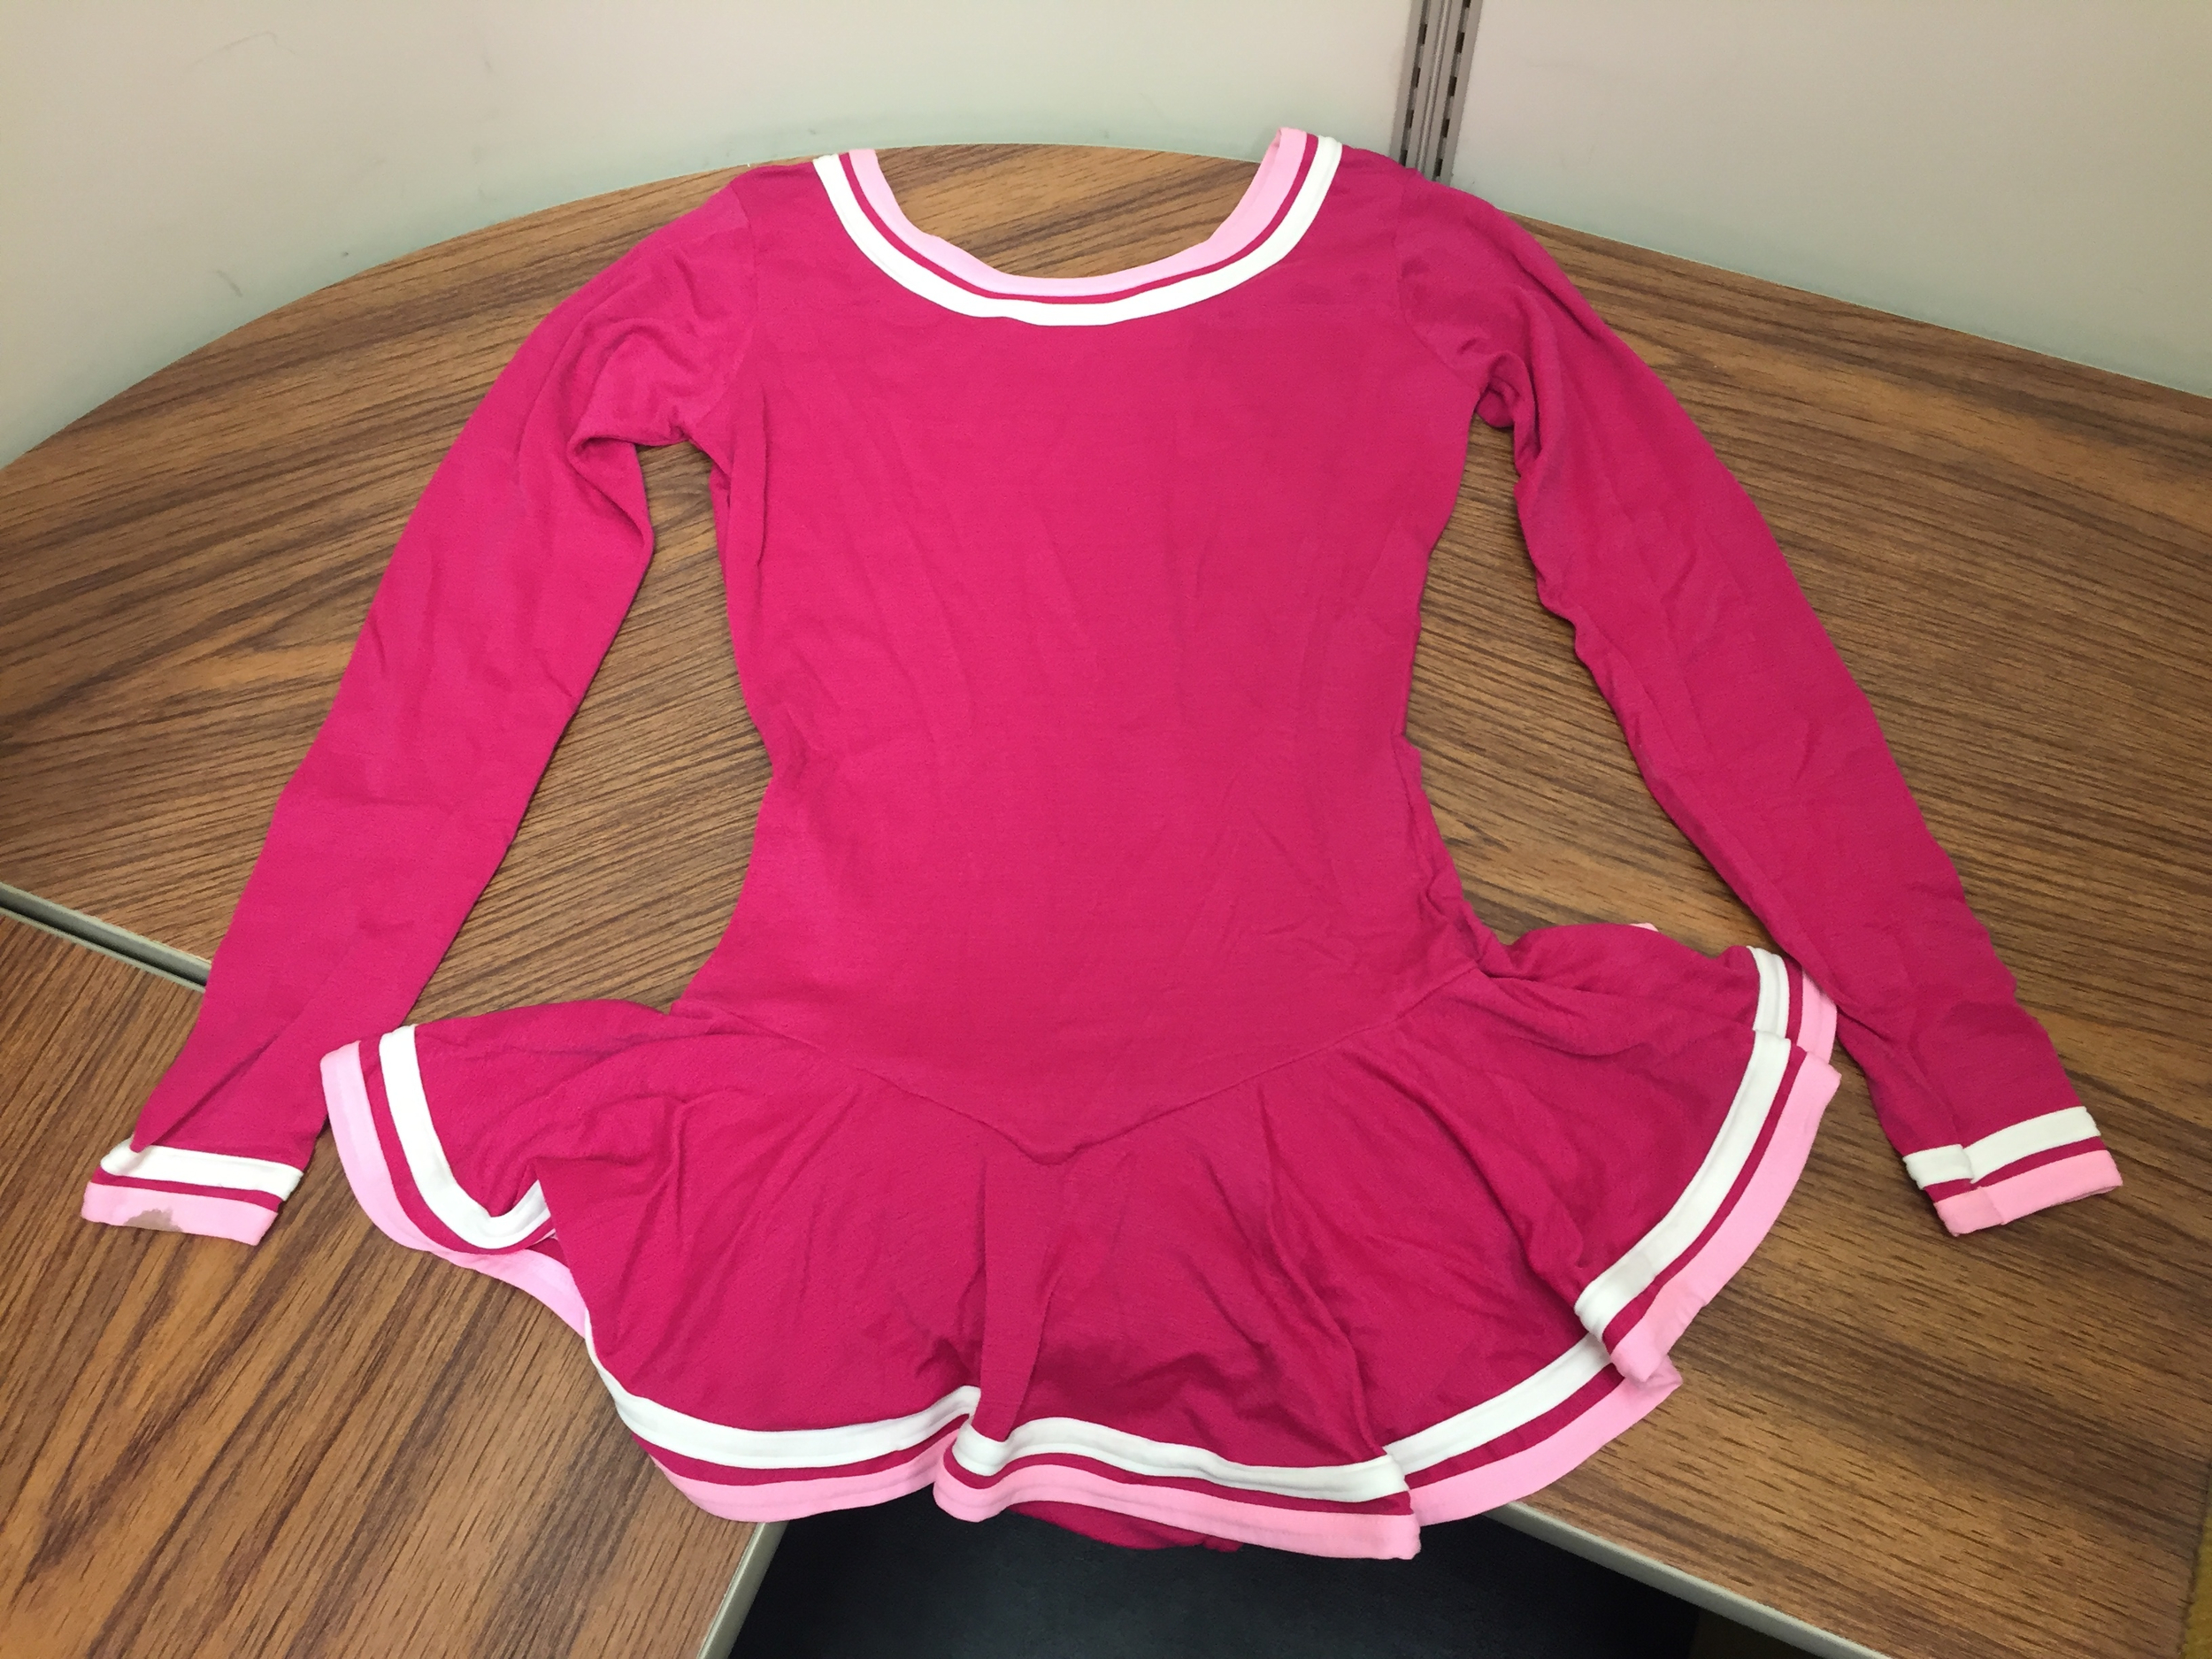 Vibrant Pink and white roller dress worn by local DC skater and instructor Connie Pollard, donated to the Moorland-Spingarn Research Center at Howard University.